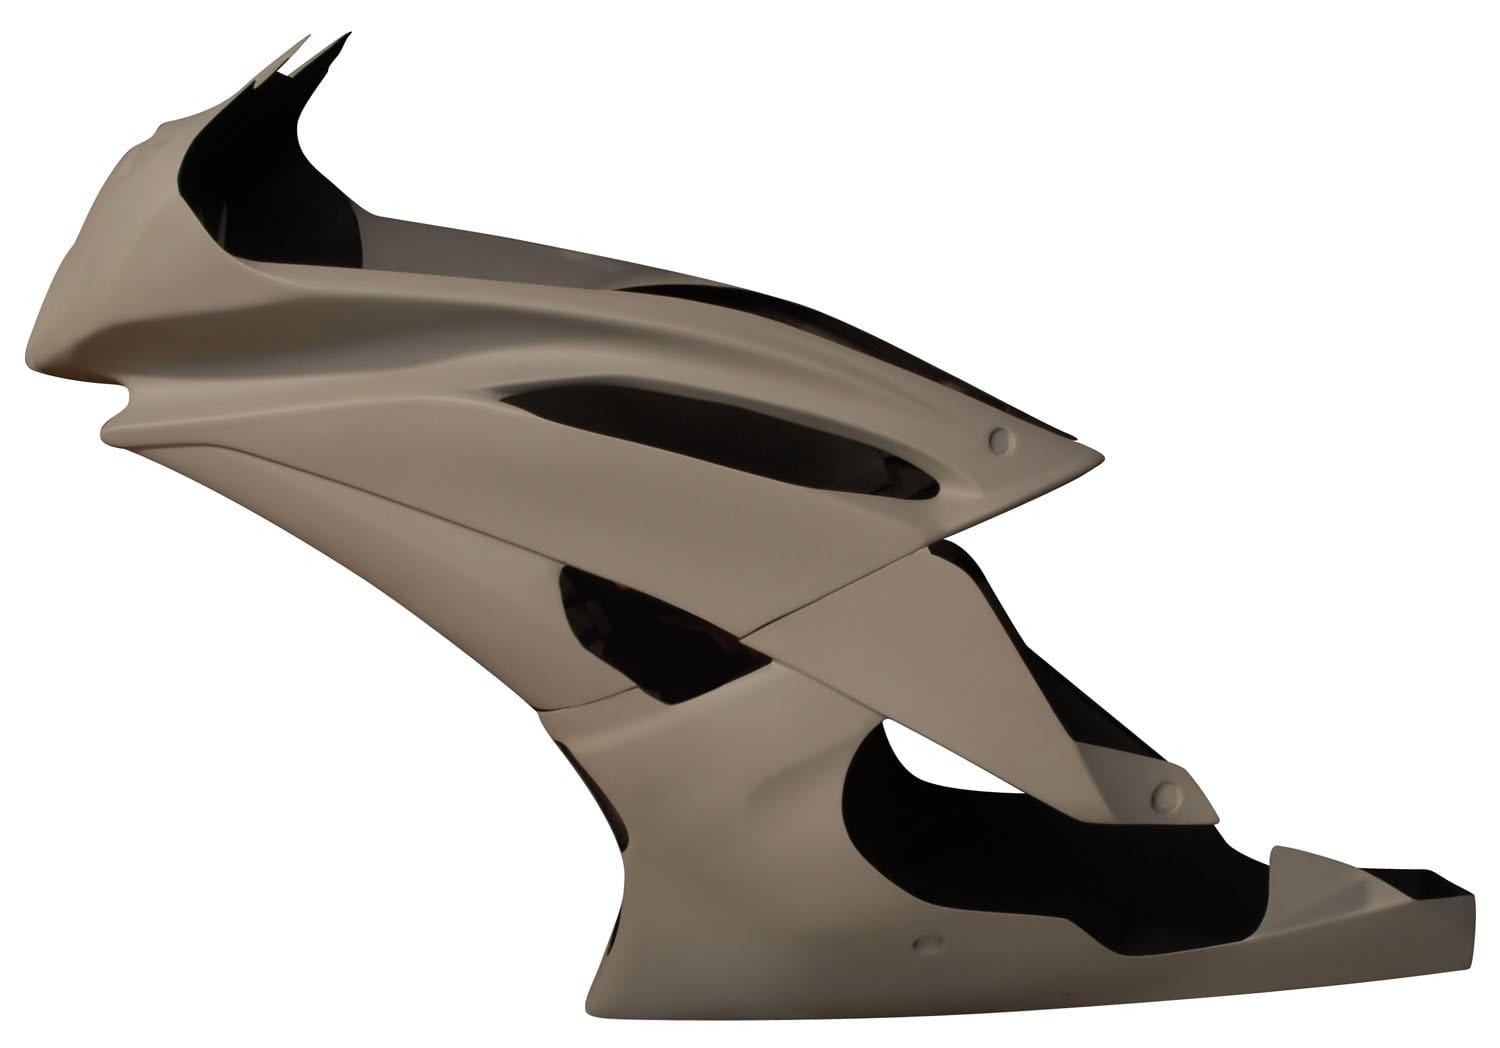 08-16 Yam R6 Upper Fairing - Pro Series - Woodcraft Technologies - Motorcycle Parts